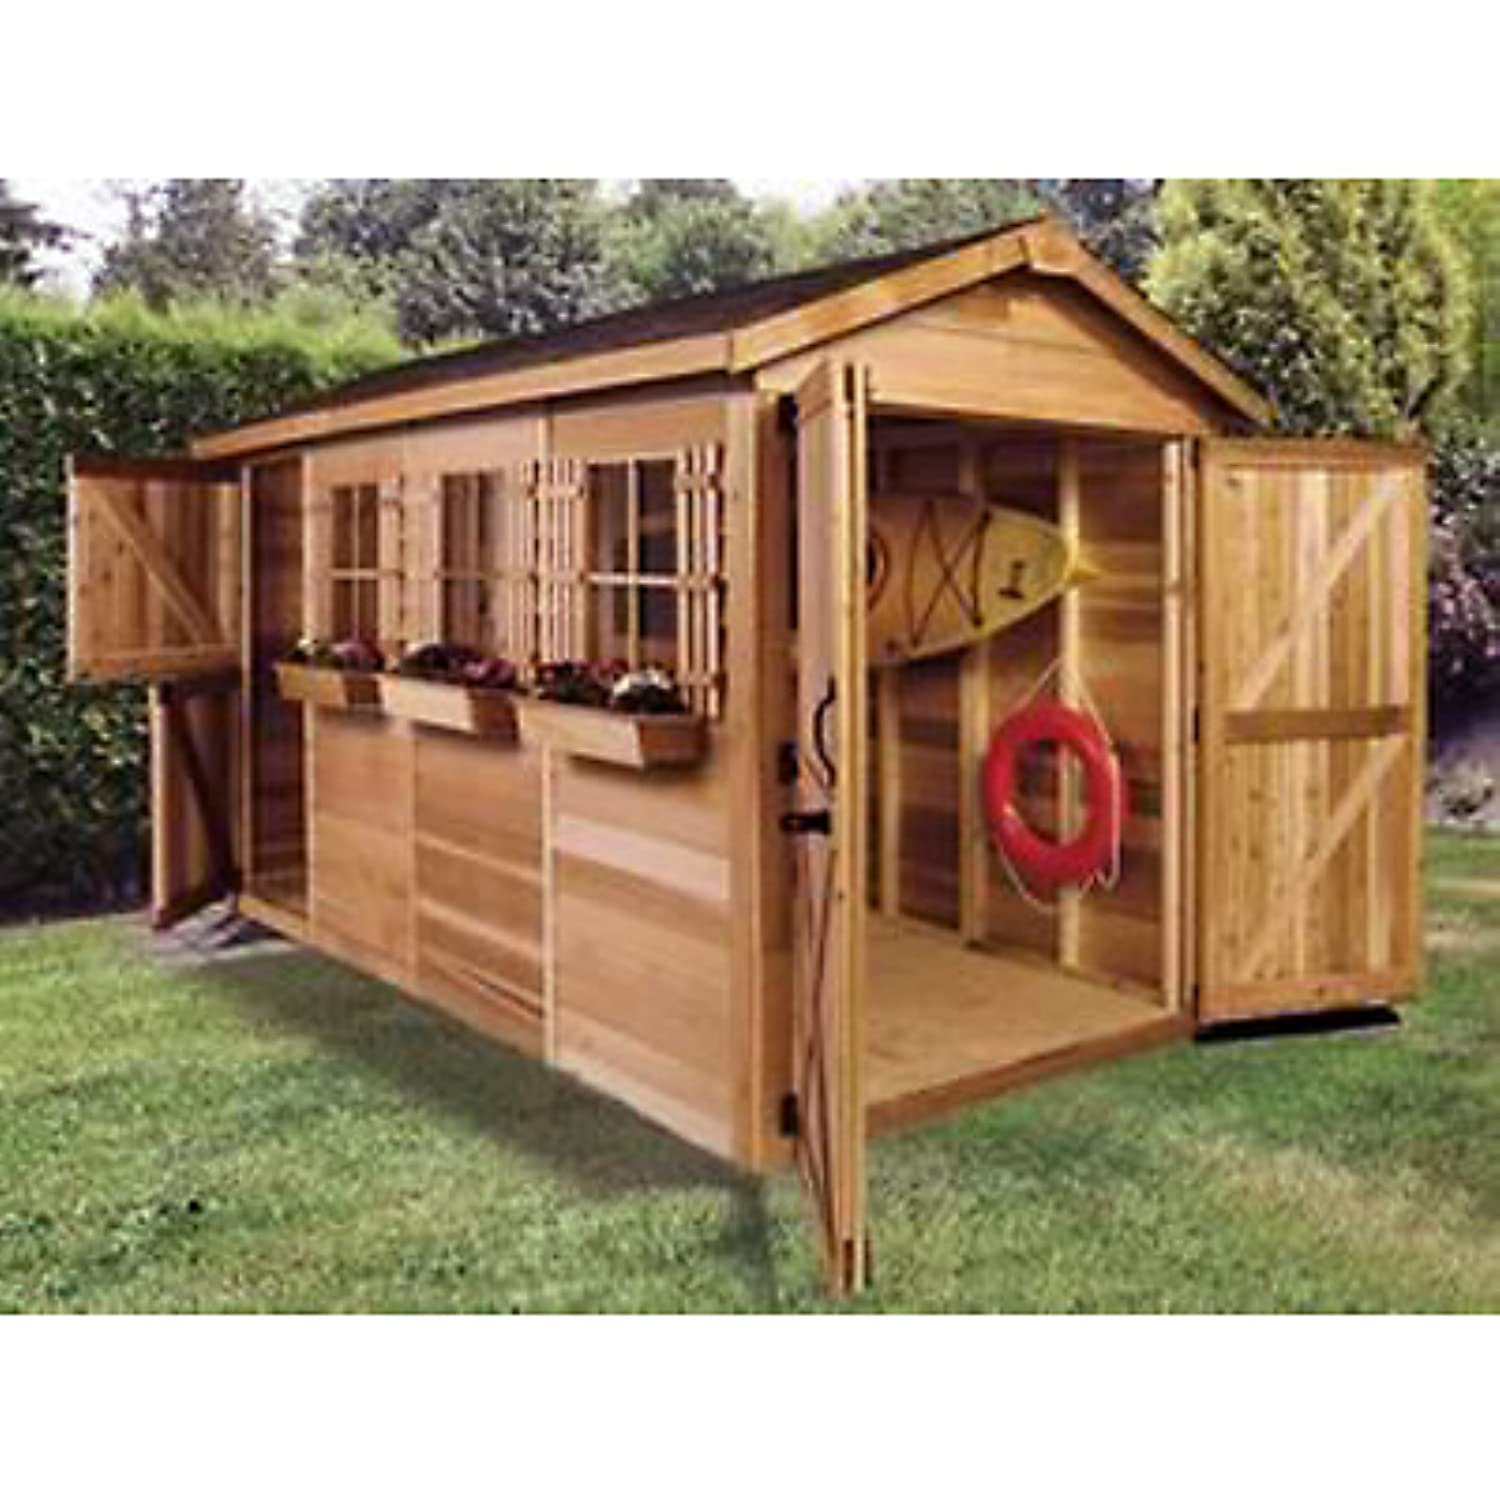 amazoncom shed 12 x 8 ft boathouse garden shed storage sheds garden outdoor